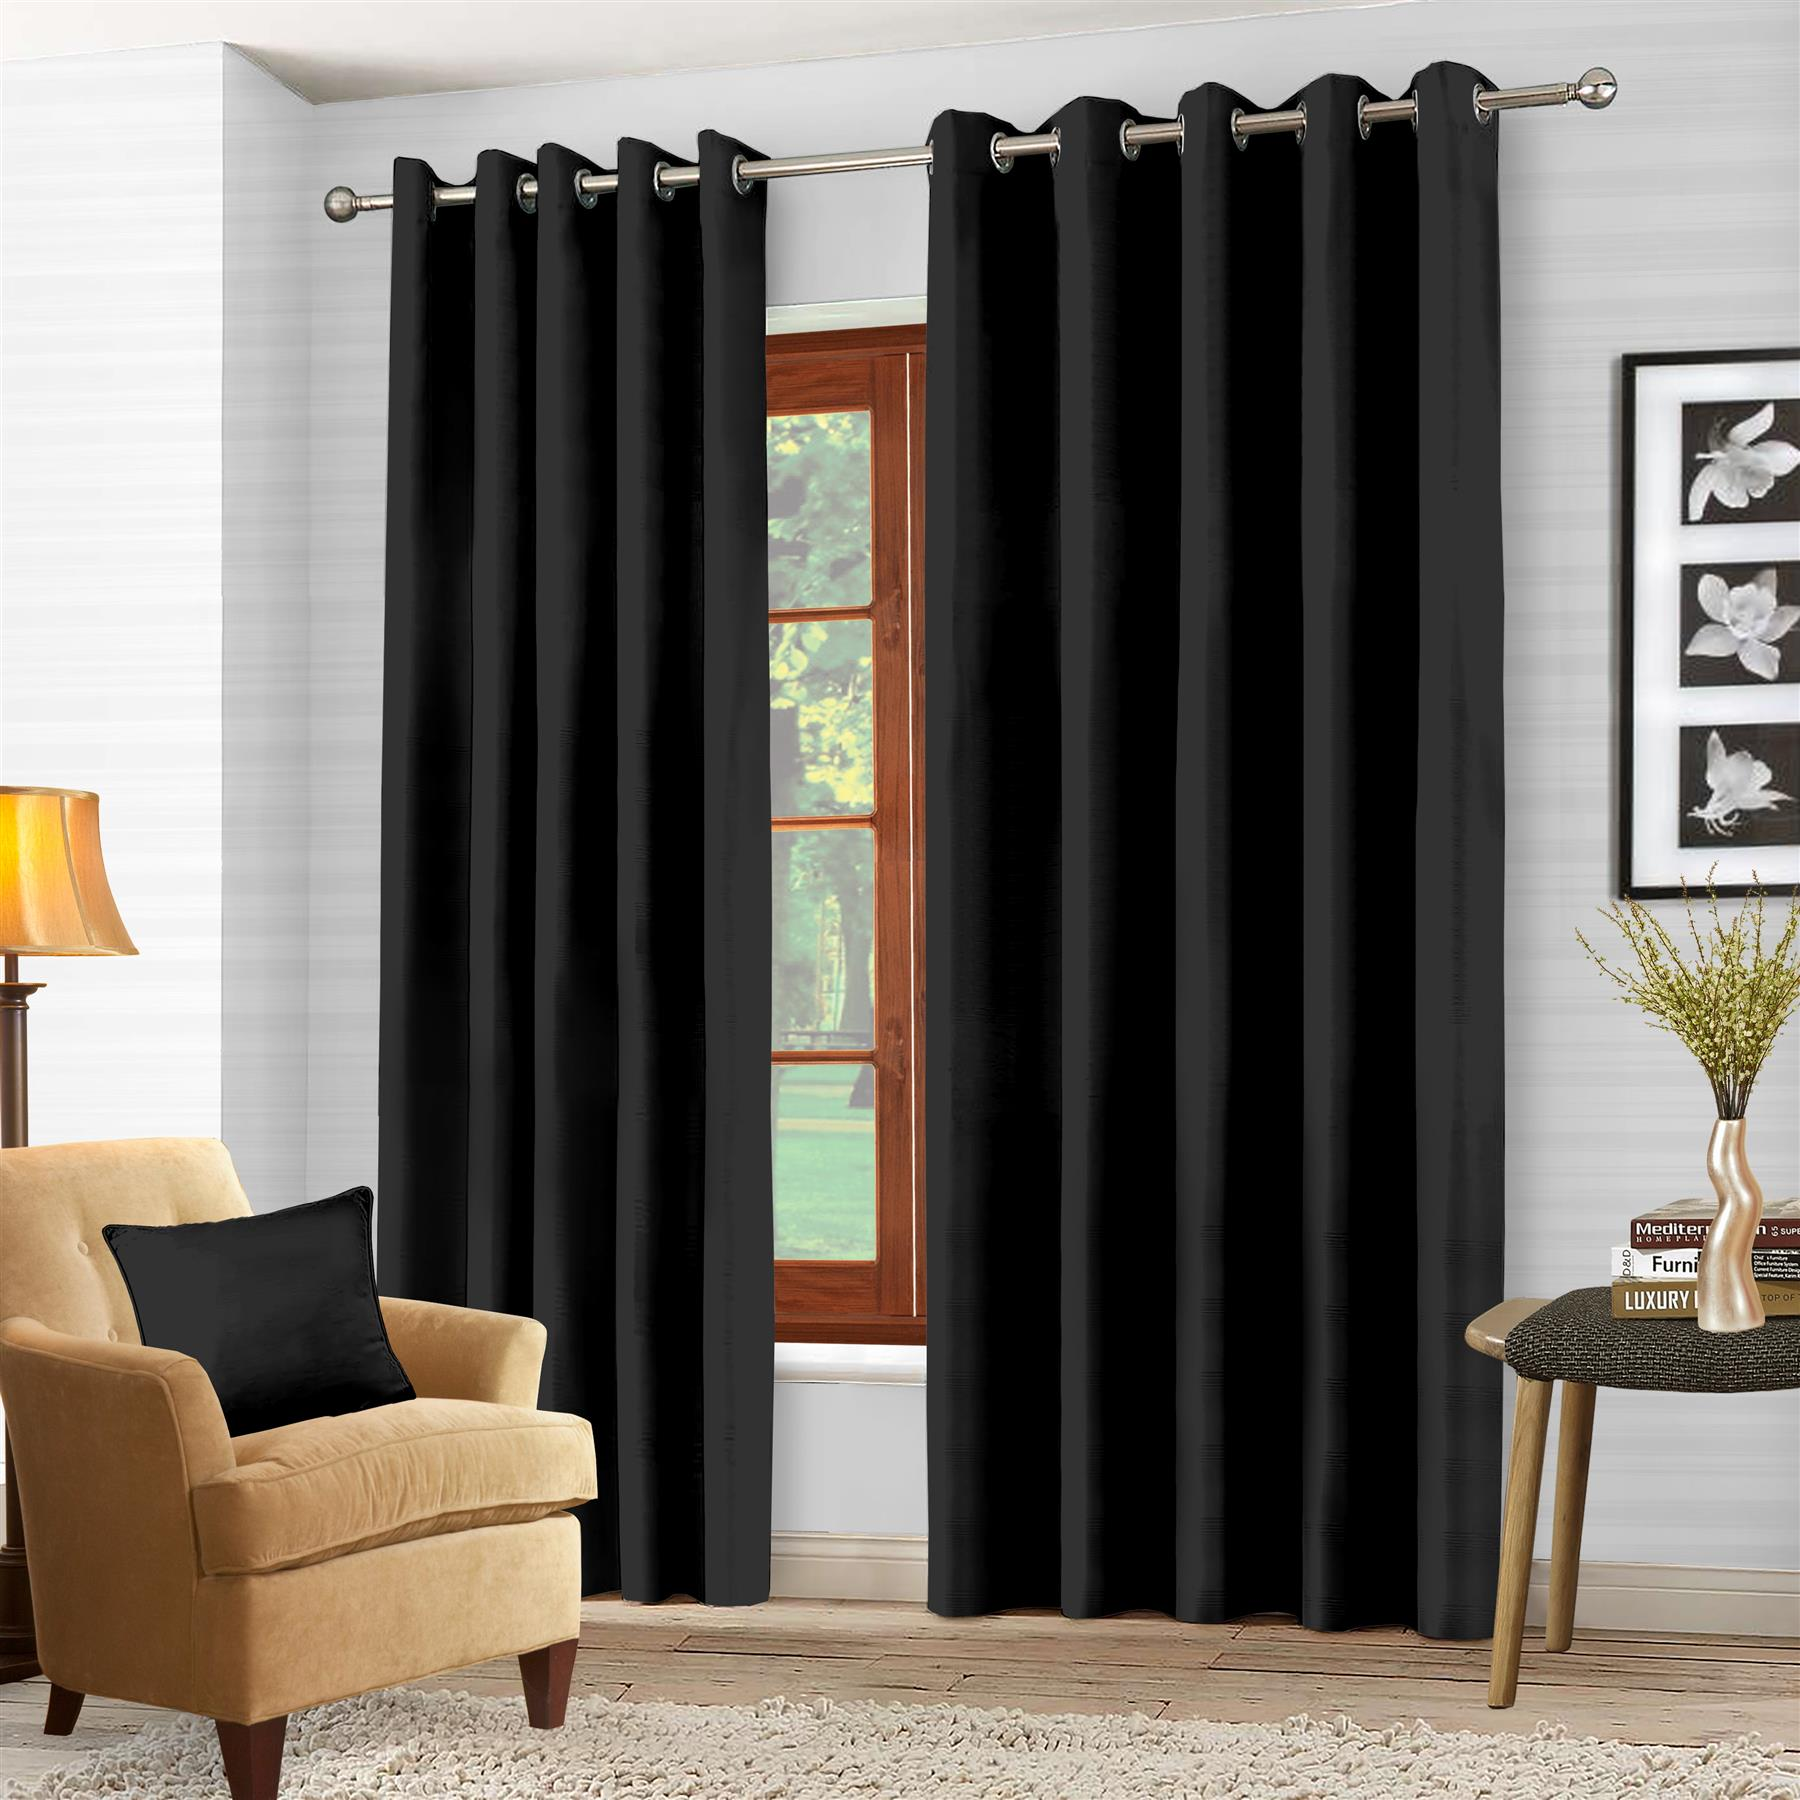 "Blackout eyelet curtain Pair-66"" x 54""-Black - smrt-life.com"